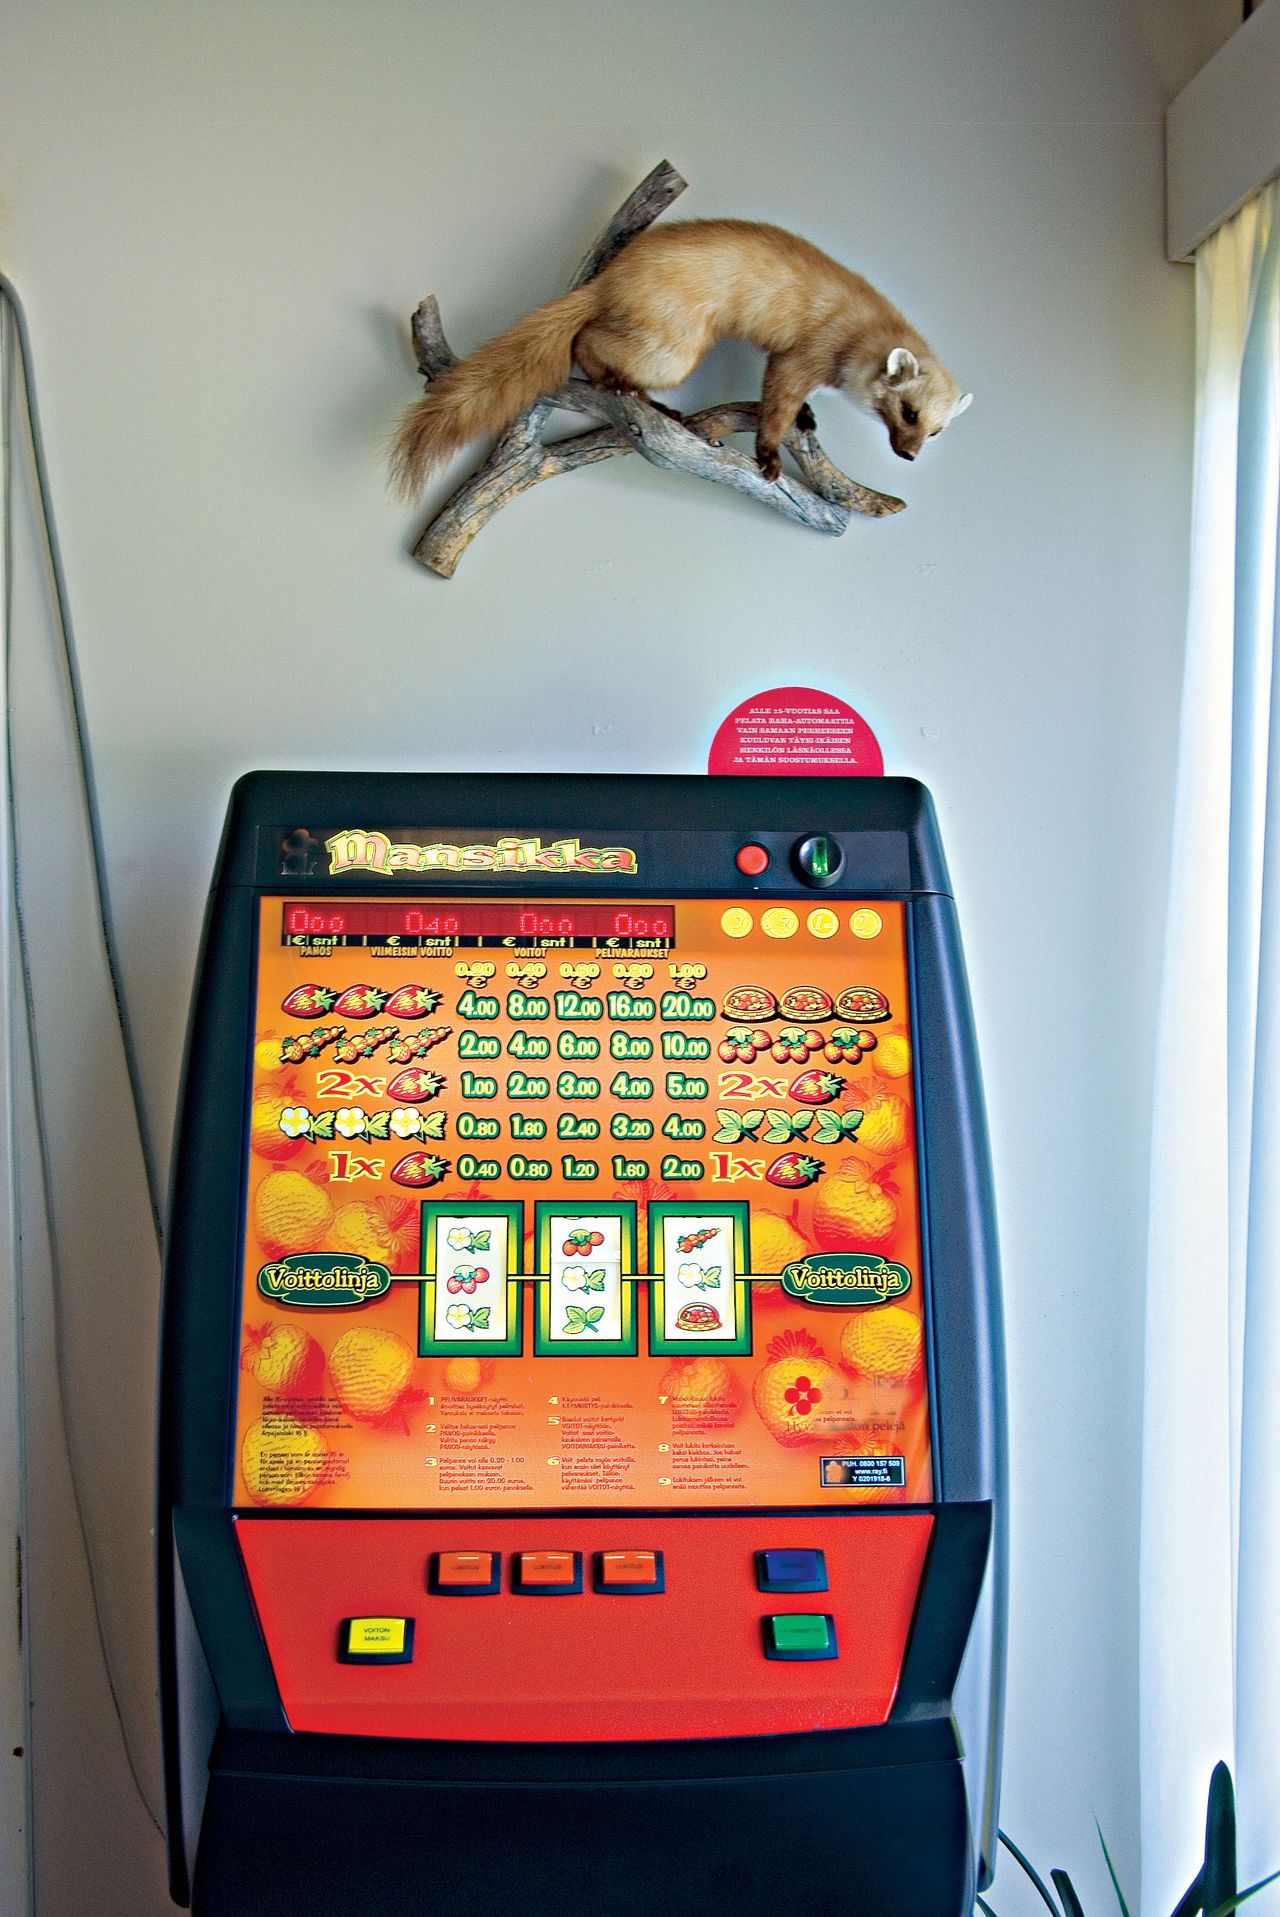 A Caming Console A Pine Marten A Pine Marten And A Play Machine A Play Machine A Stroke Of Luck? Animal Themes Day Indoors  No People One Animal To Pass The Time